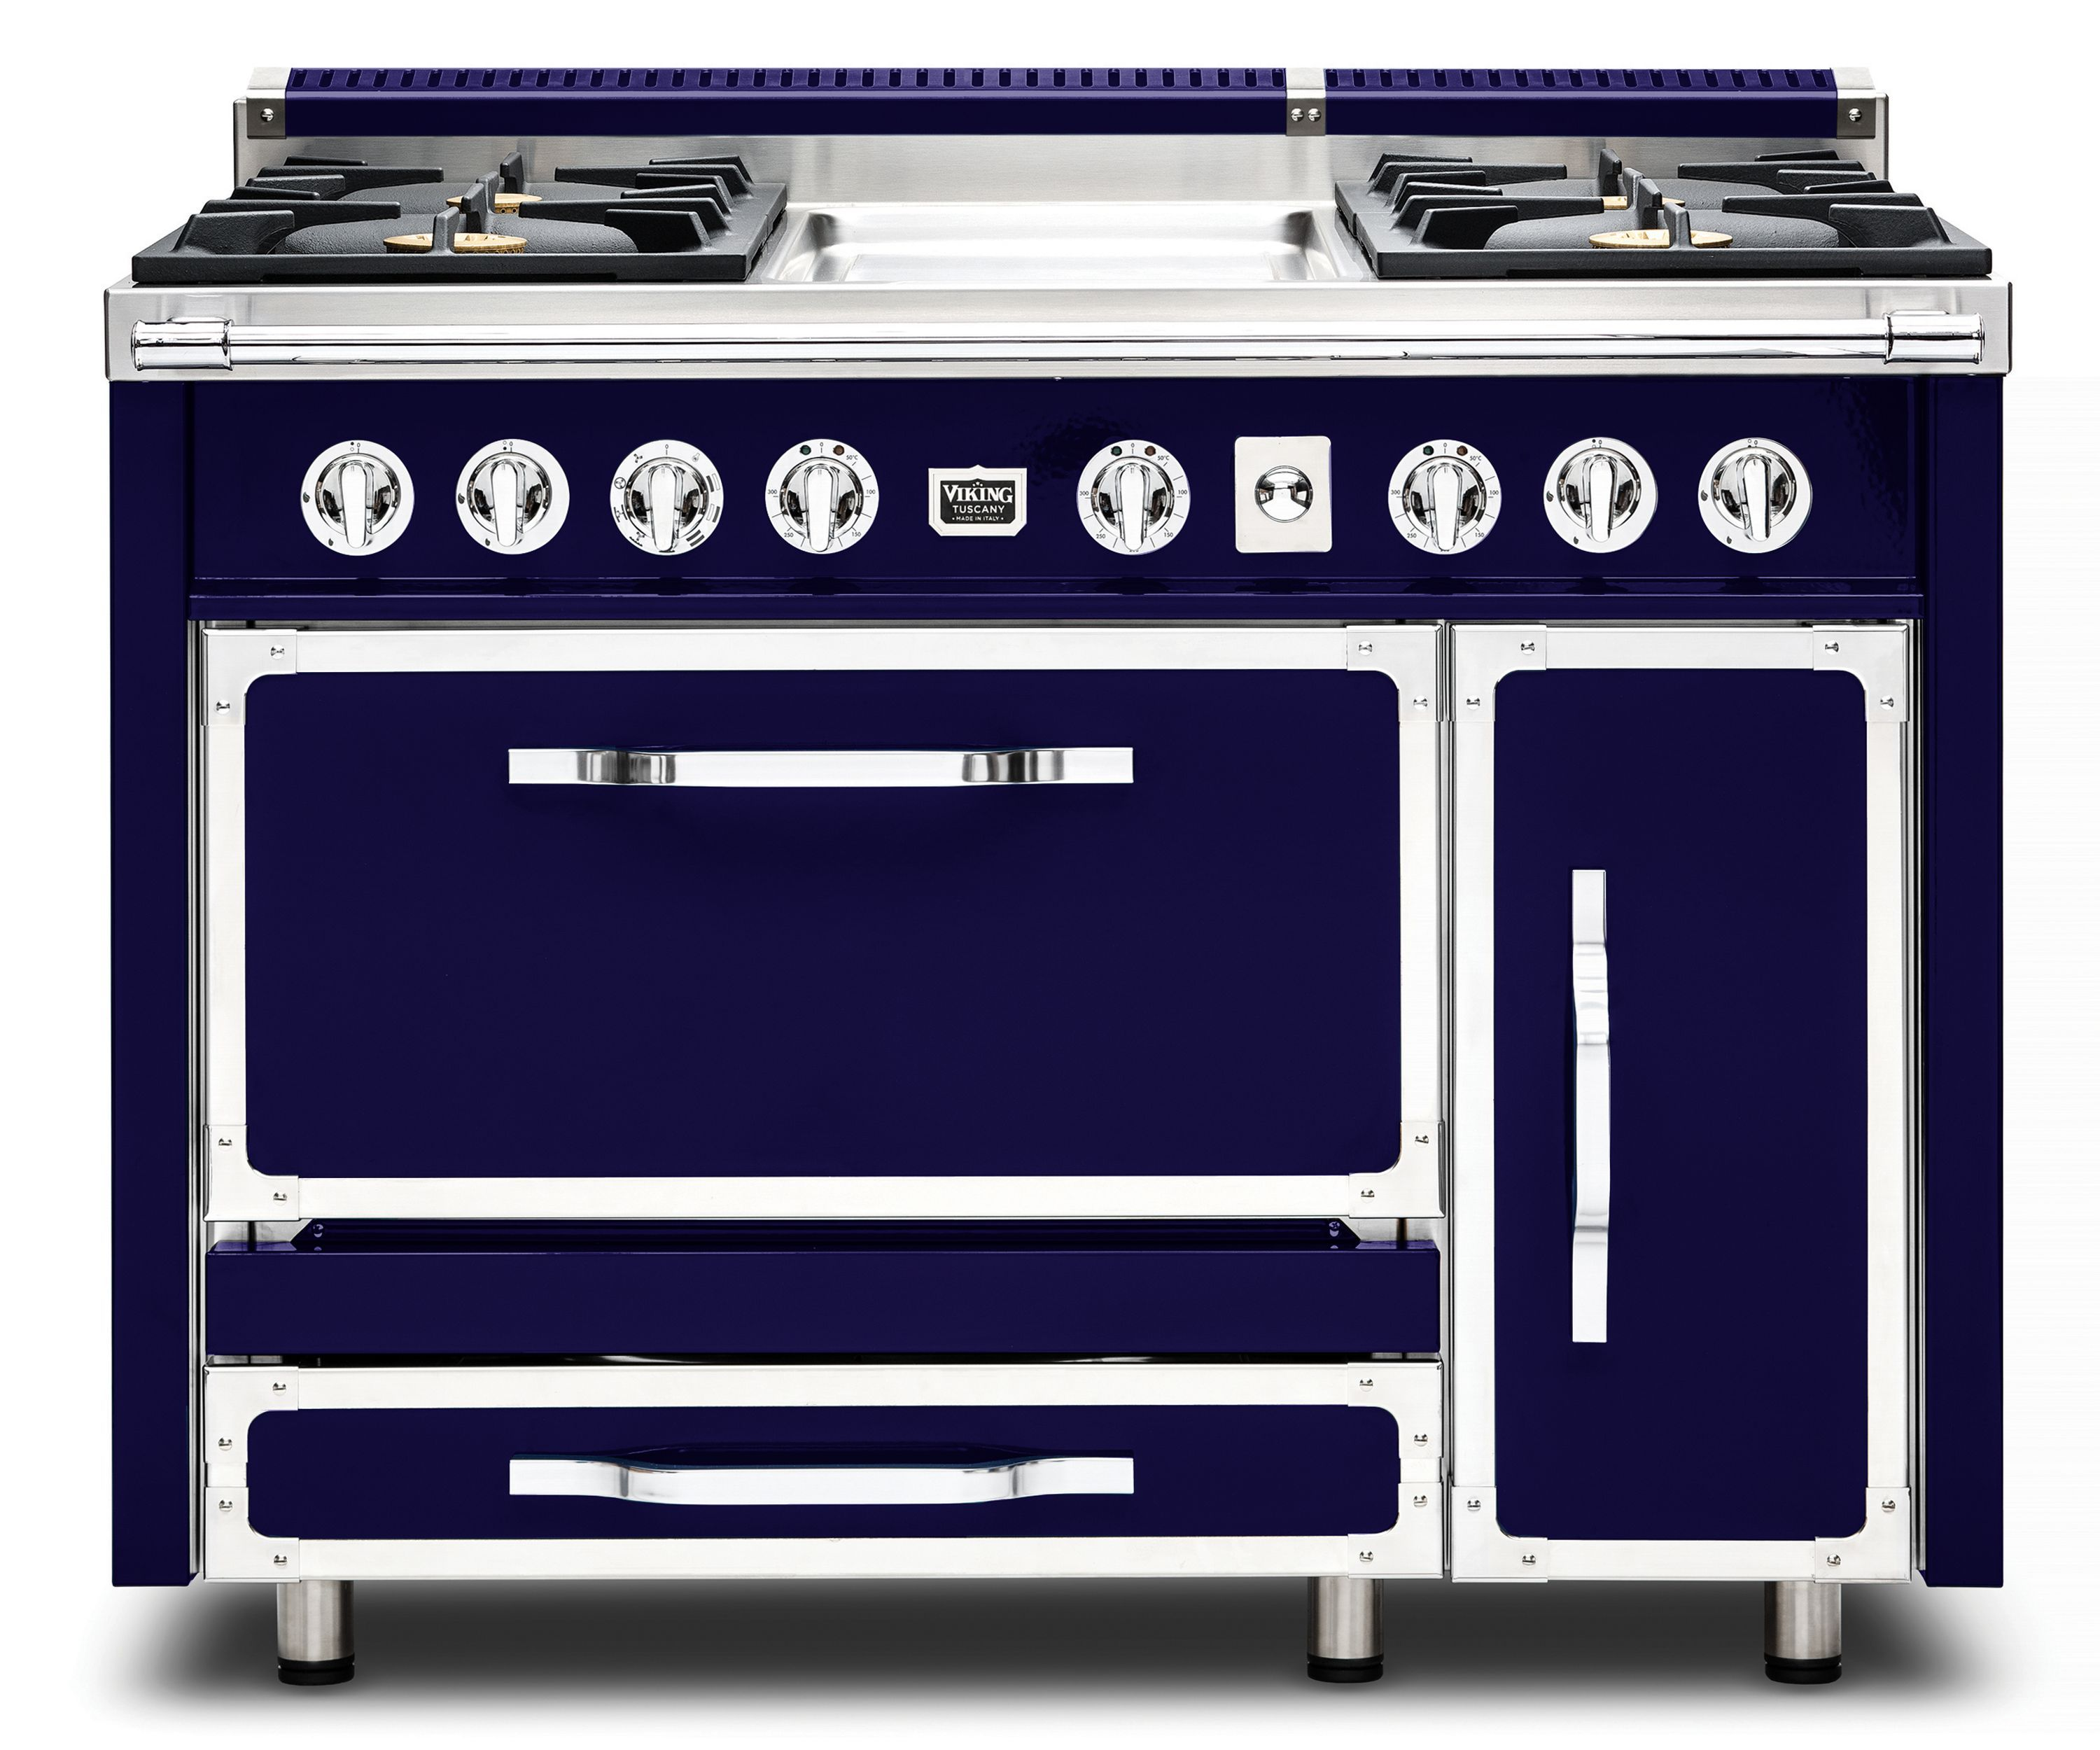 cooking b stove front n gasrange ranges ss ge kitchen freestanding stoves